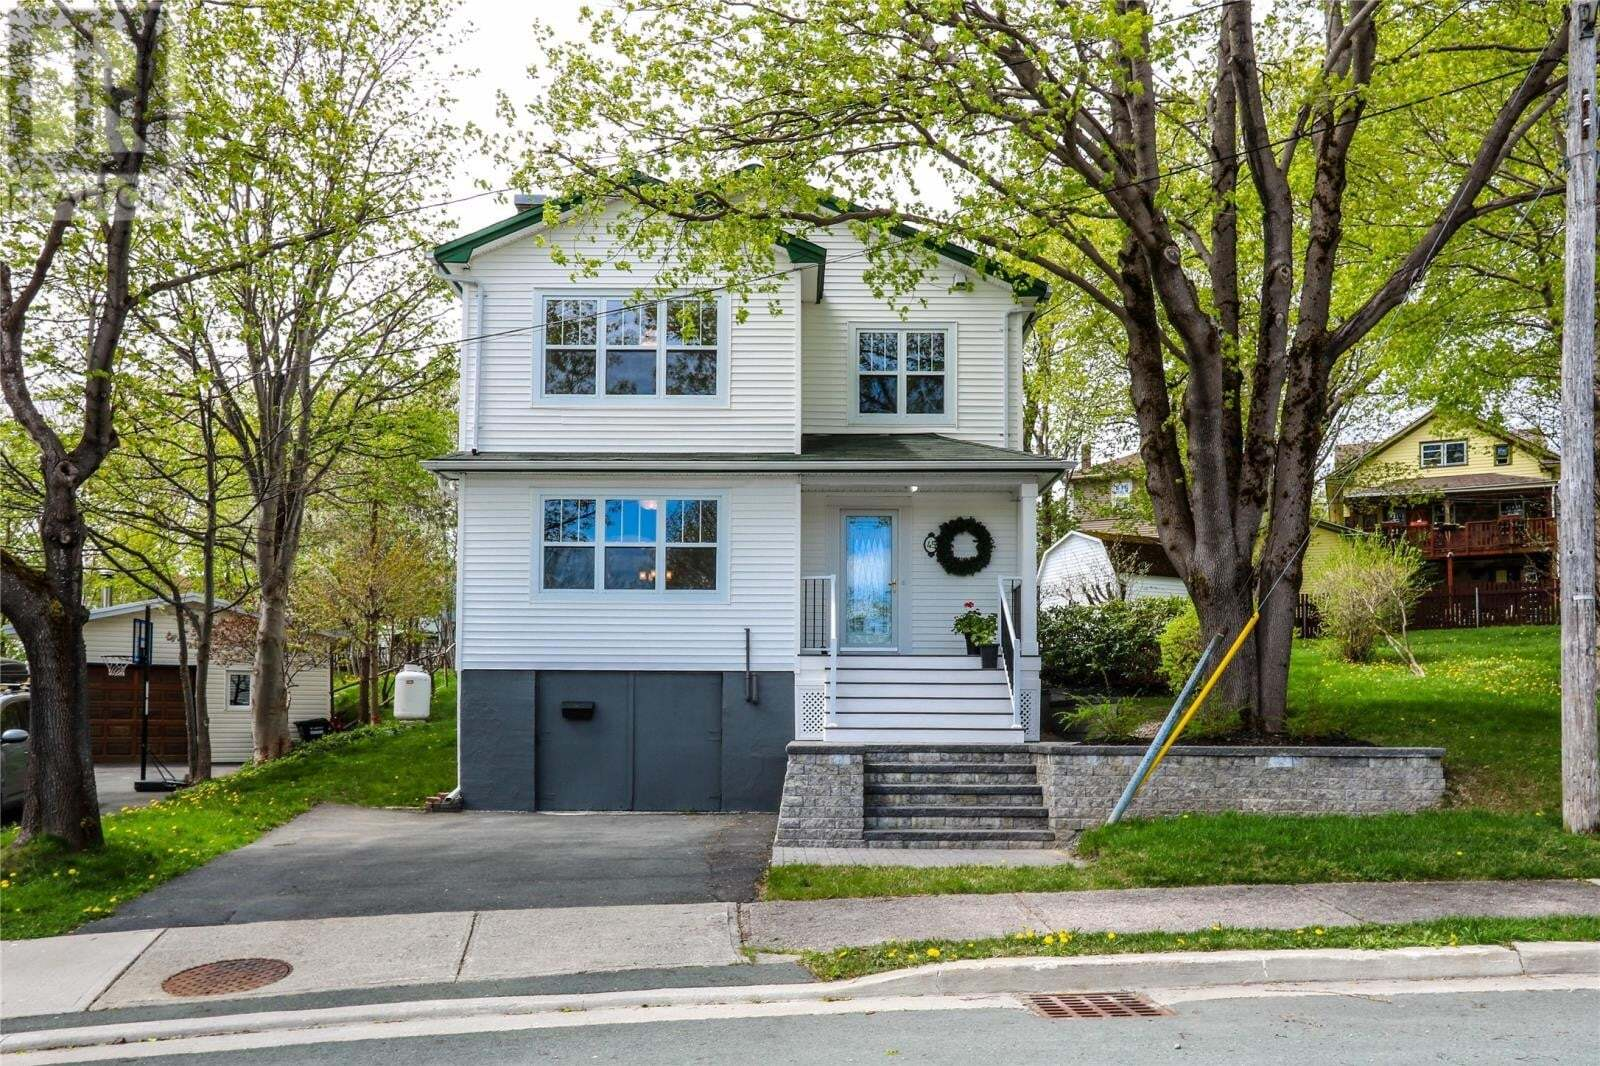 House for sale at 45 Cornwall Cres St. John's Newfoundland - MLS: 1214635